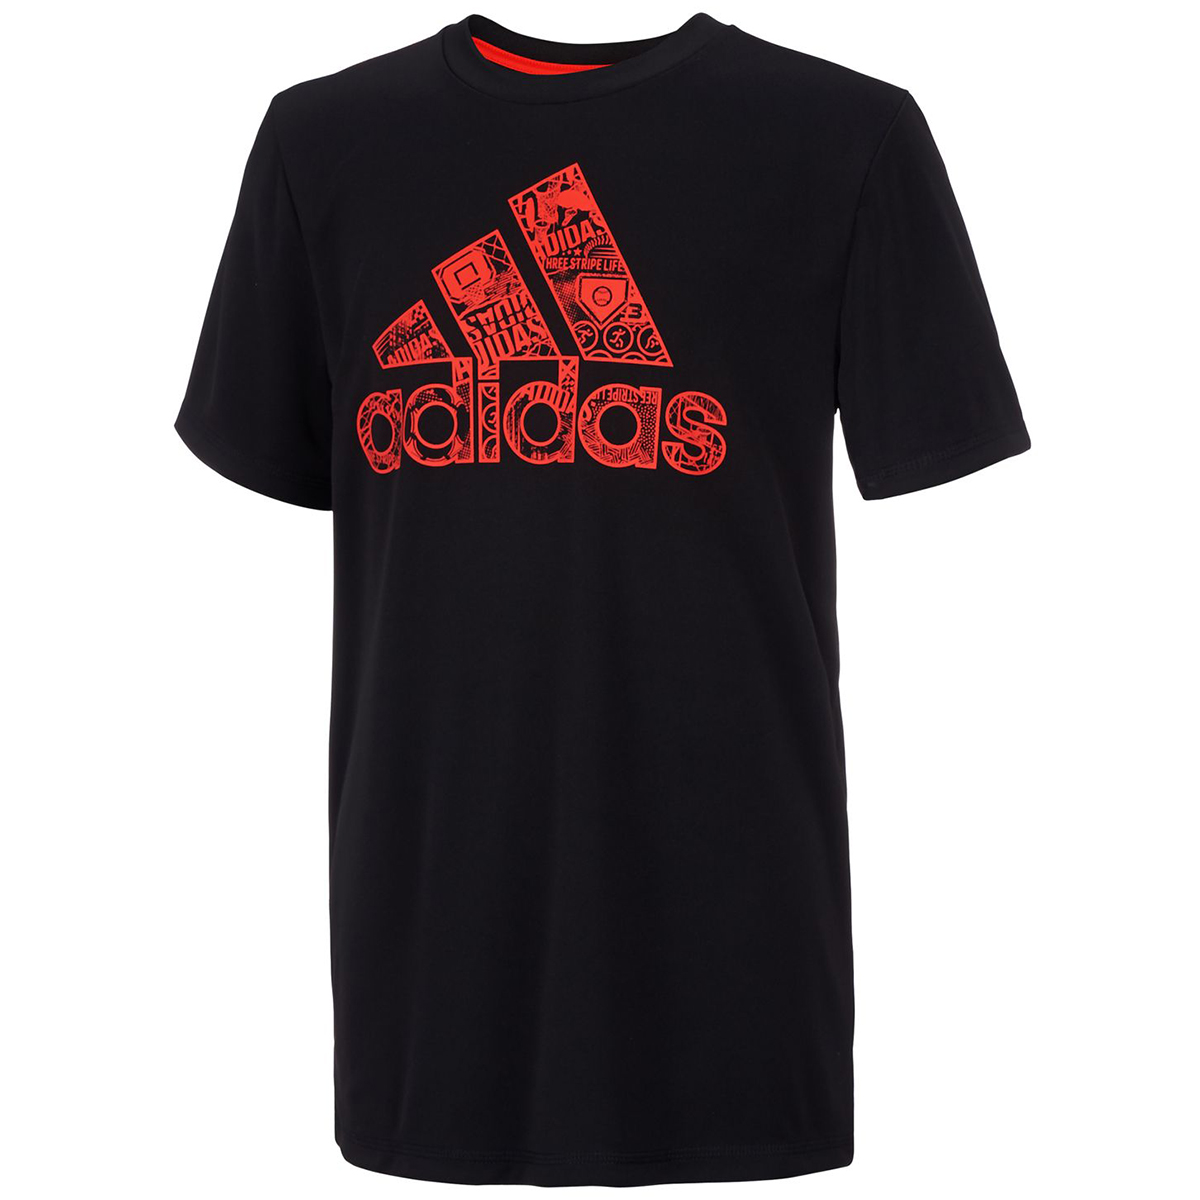 Adidas Boys' Multi Sport Tee - Black, S